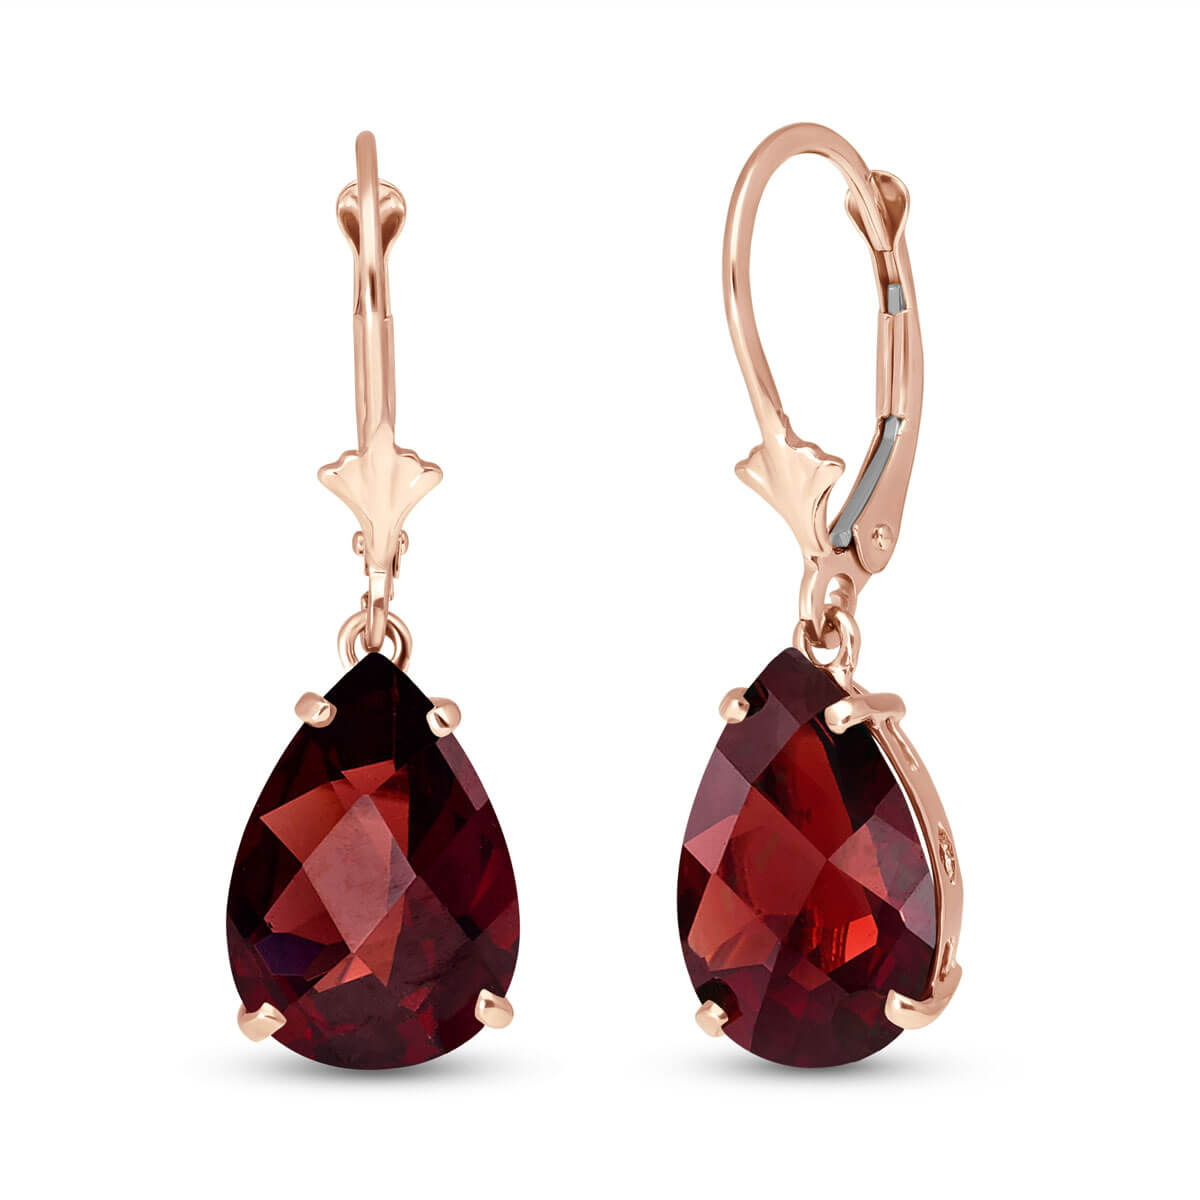 Garnet Drop Earrings 10 ctw in 9ct Rose Gold